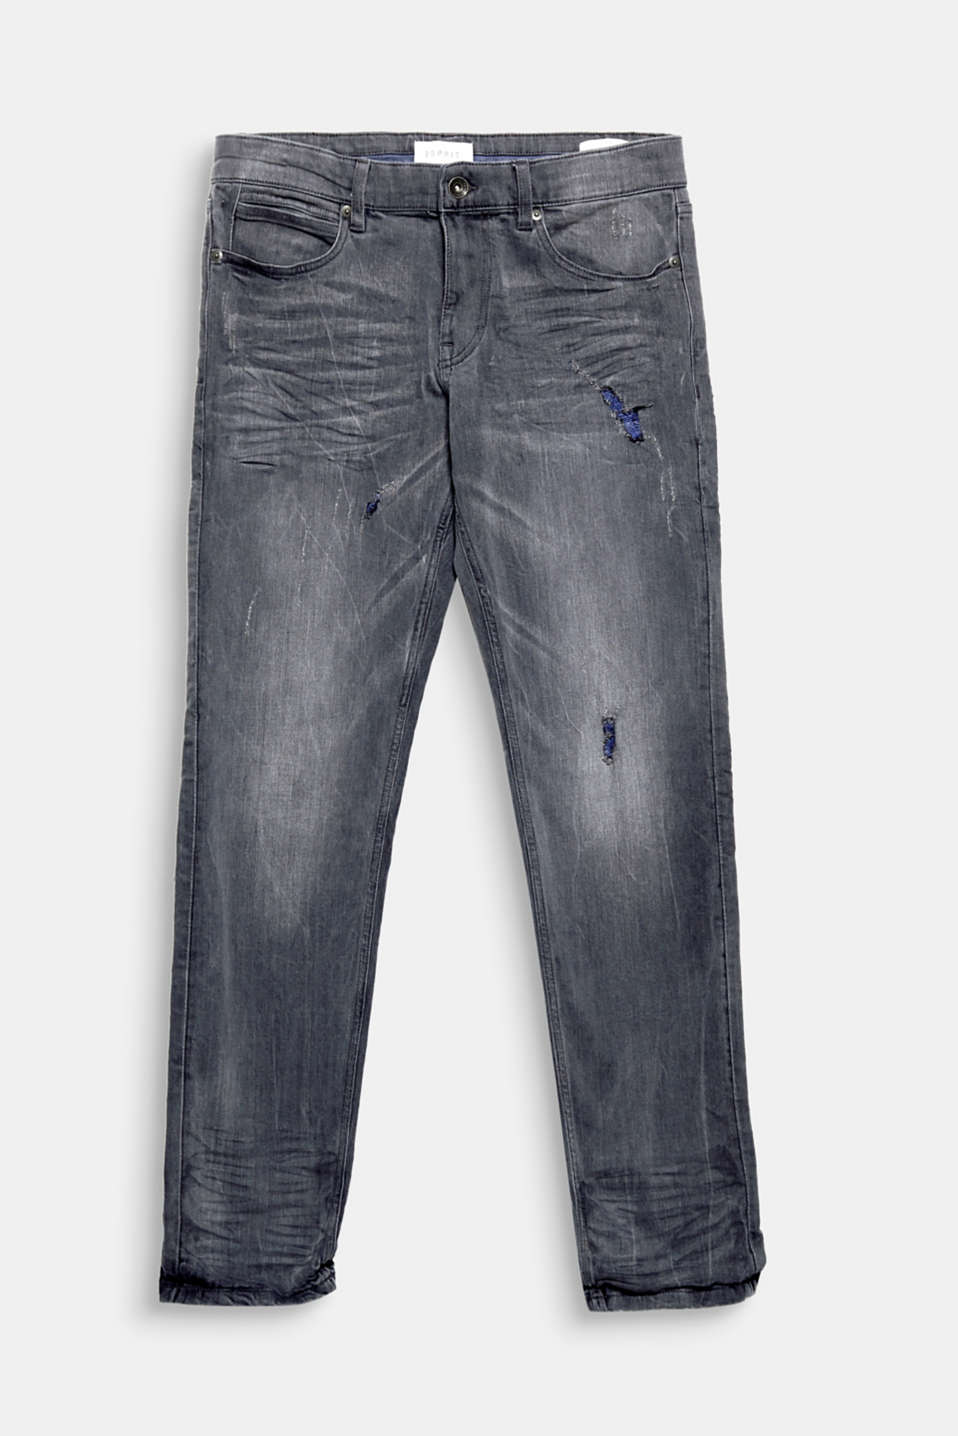 The contrasting colour, destroyed detailing makes these jeans extremely eye-catching.